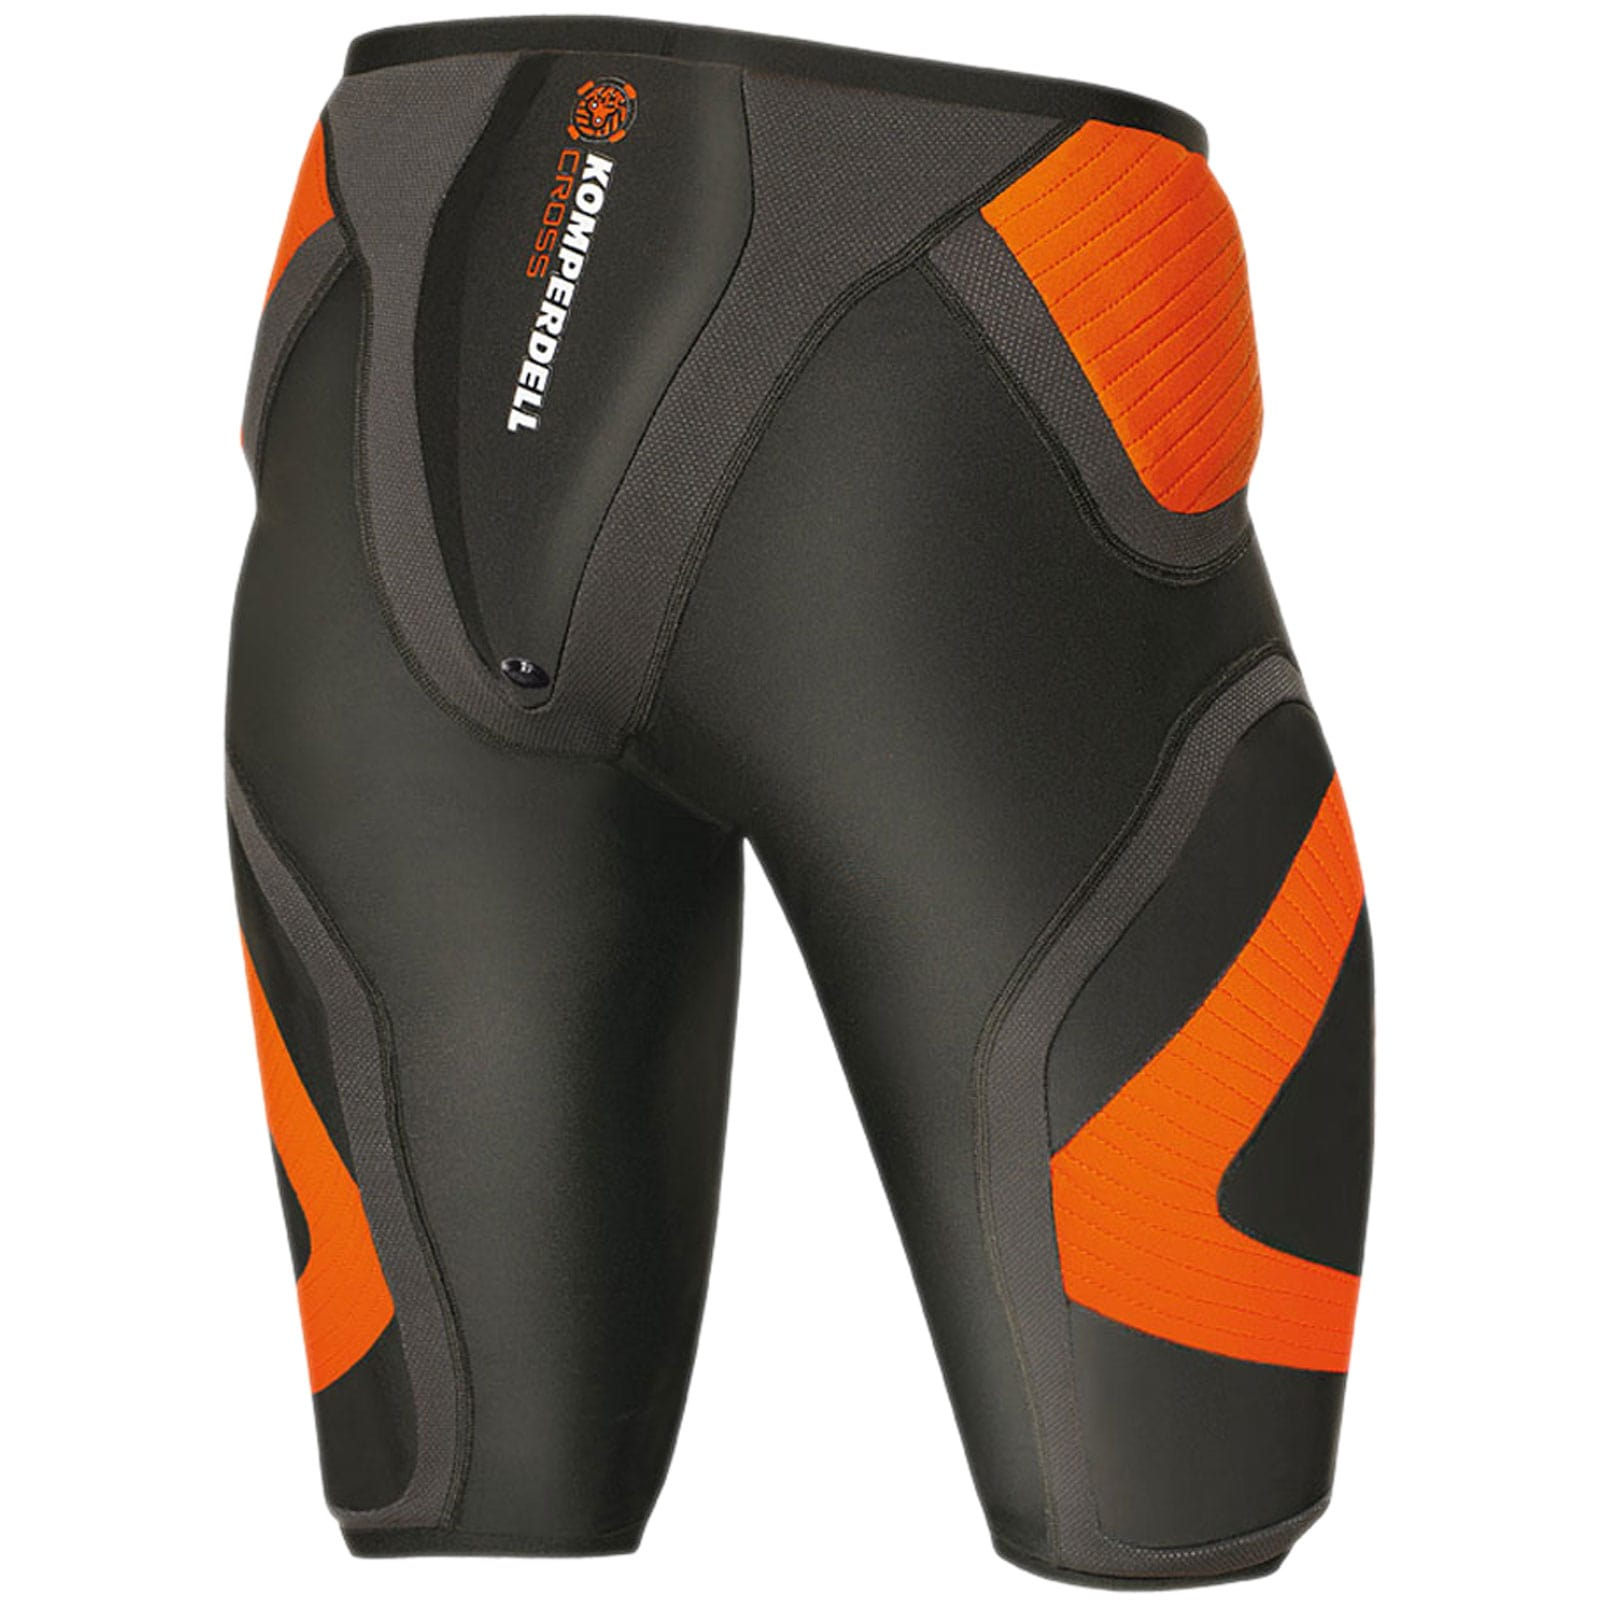 Komperdell Protector 6151-202 Cross Short 2013